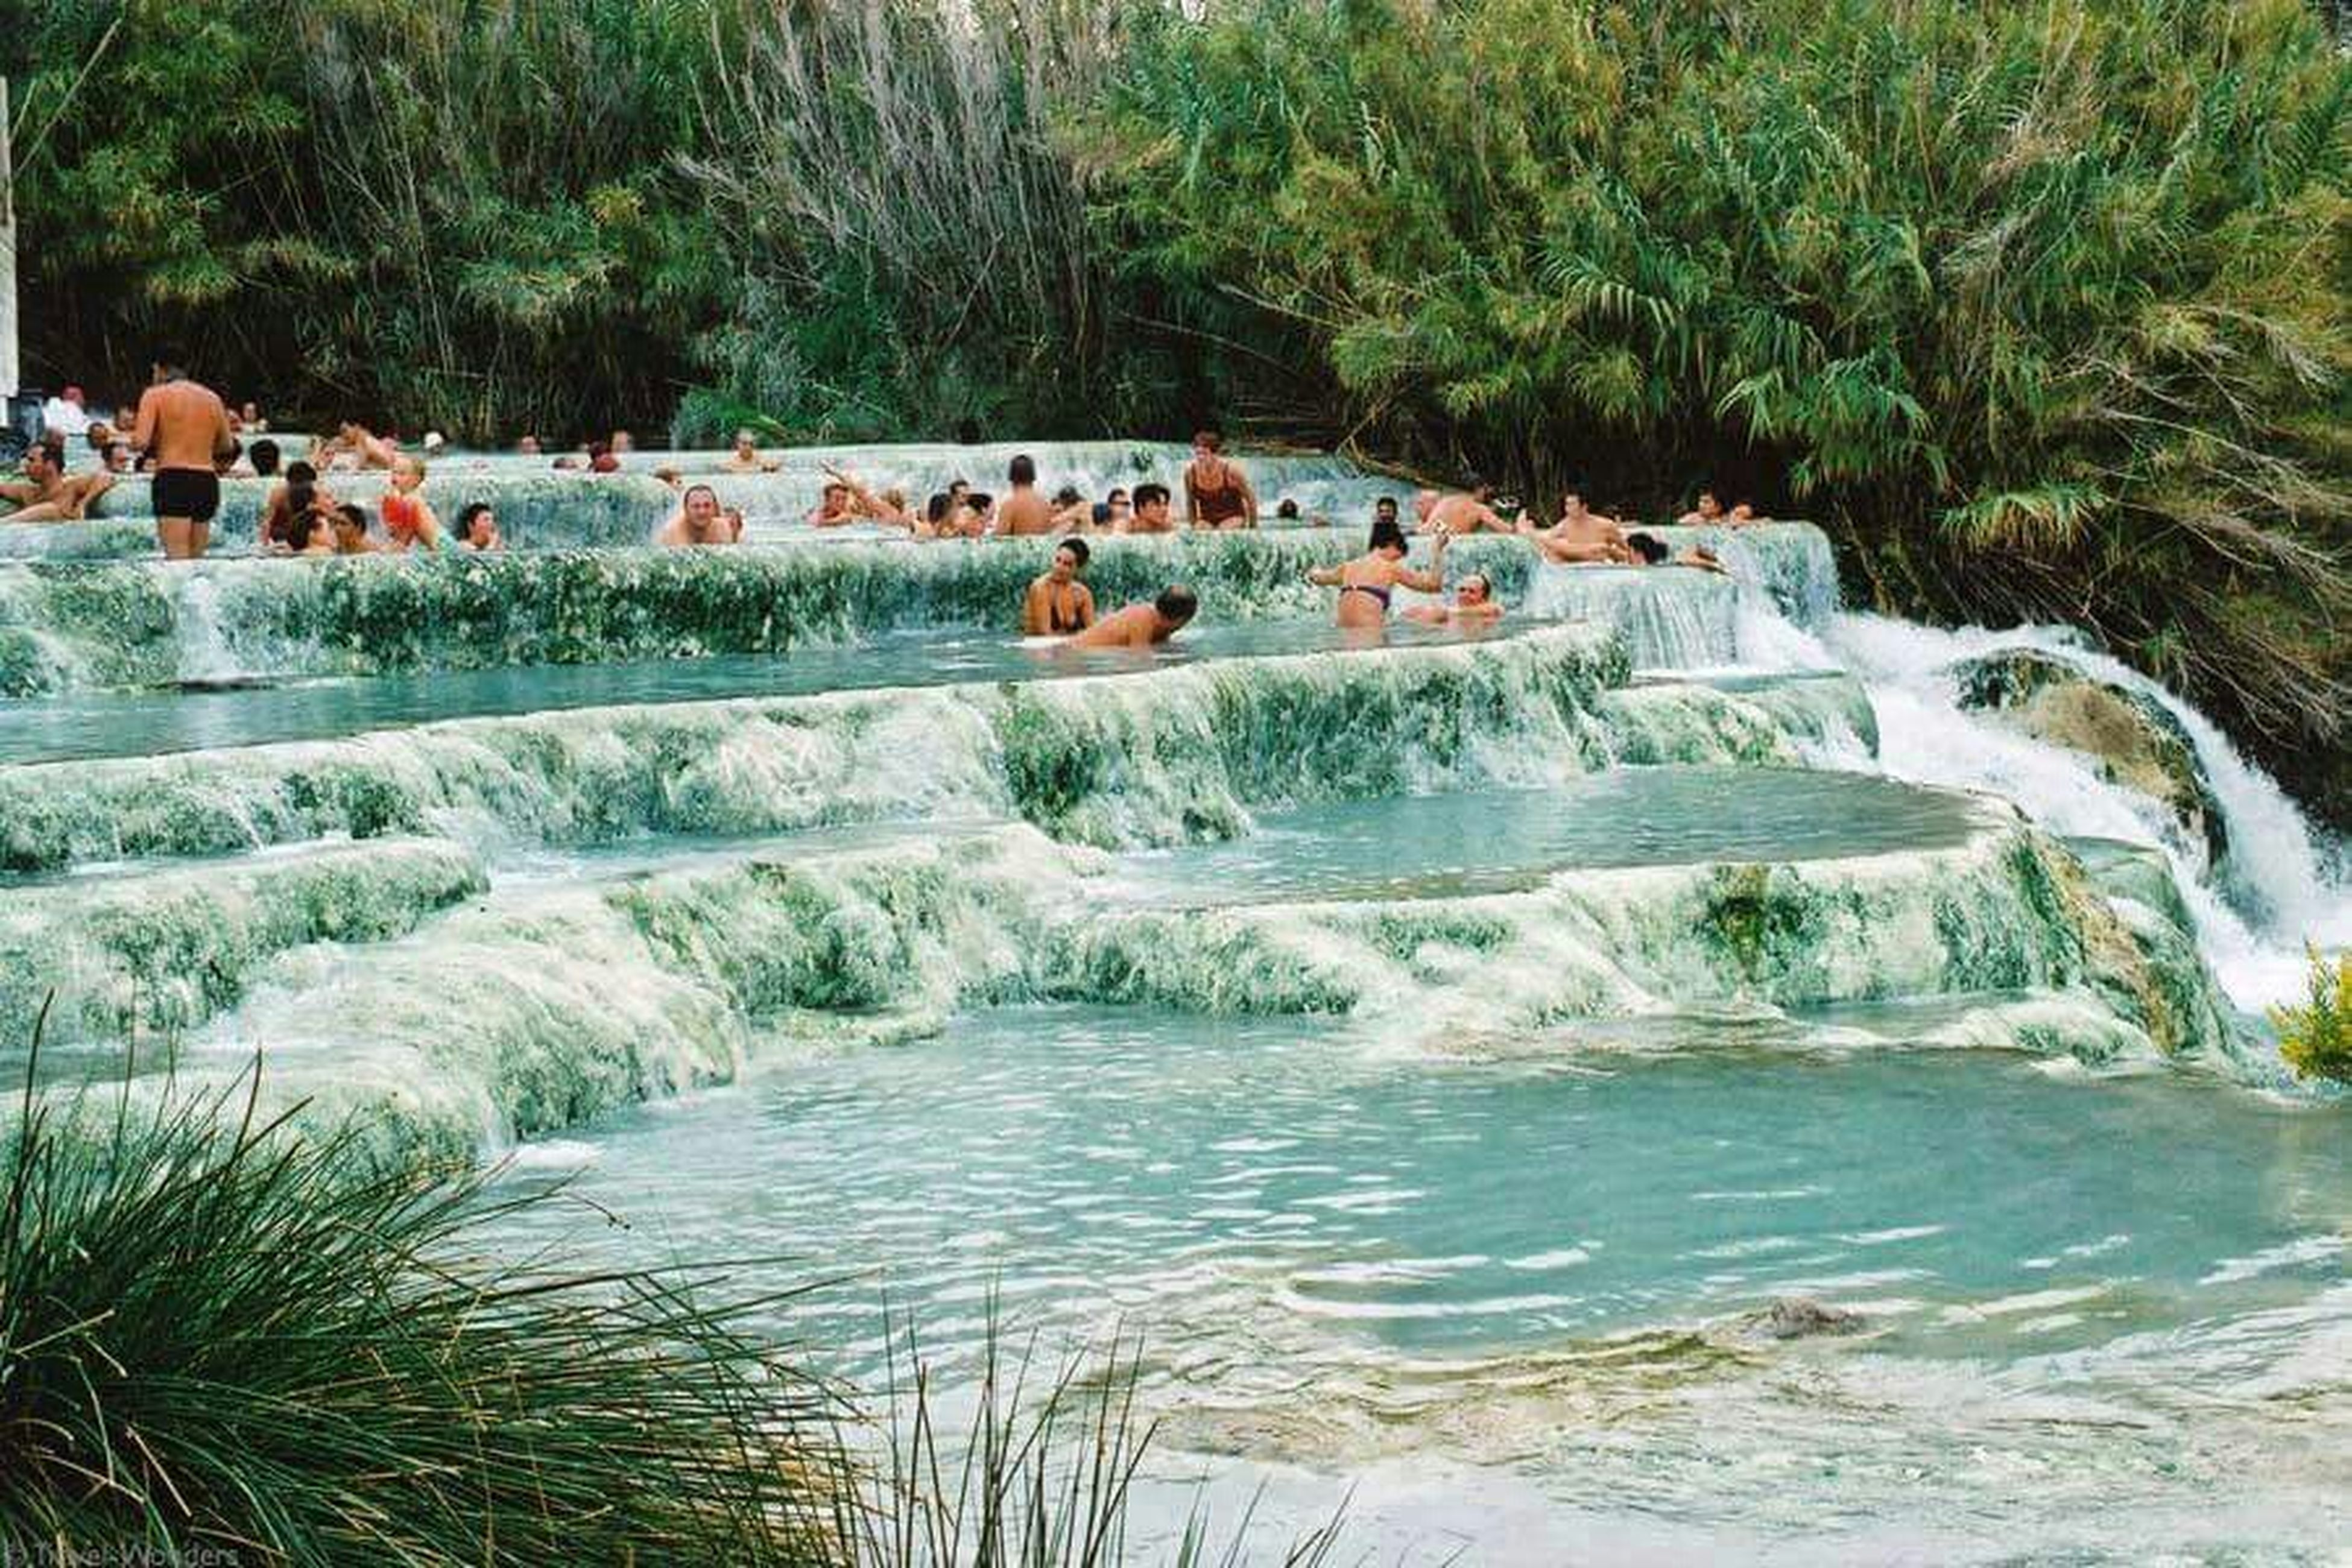 water, lifestyles, leisure activity, men, large group of people, tree, person, vacations, medium group of people, waterfront, nature, enjoyment, tourist, motion, river, beauty in nature, tourism, mixed age range, day